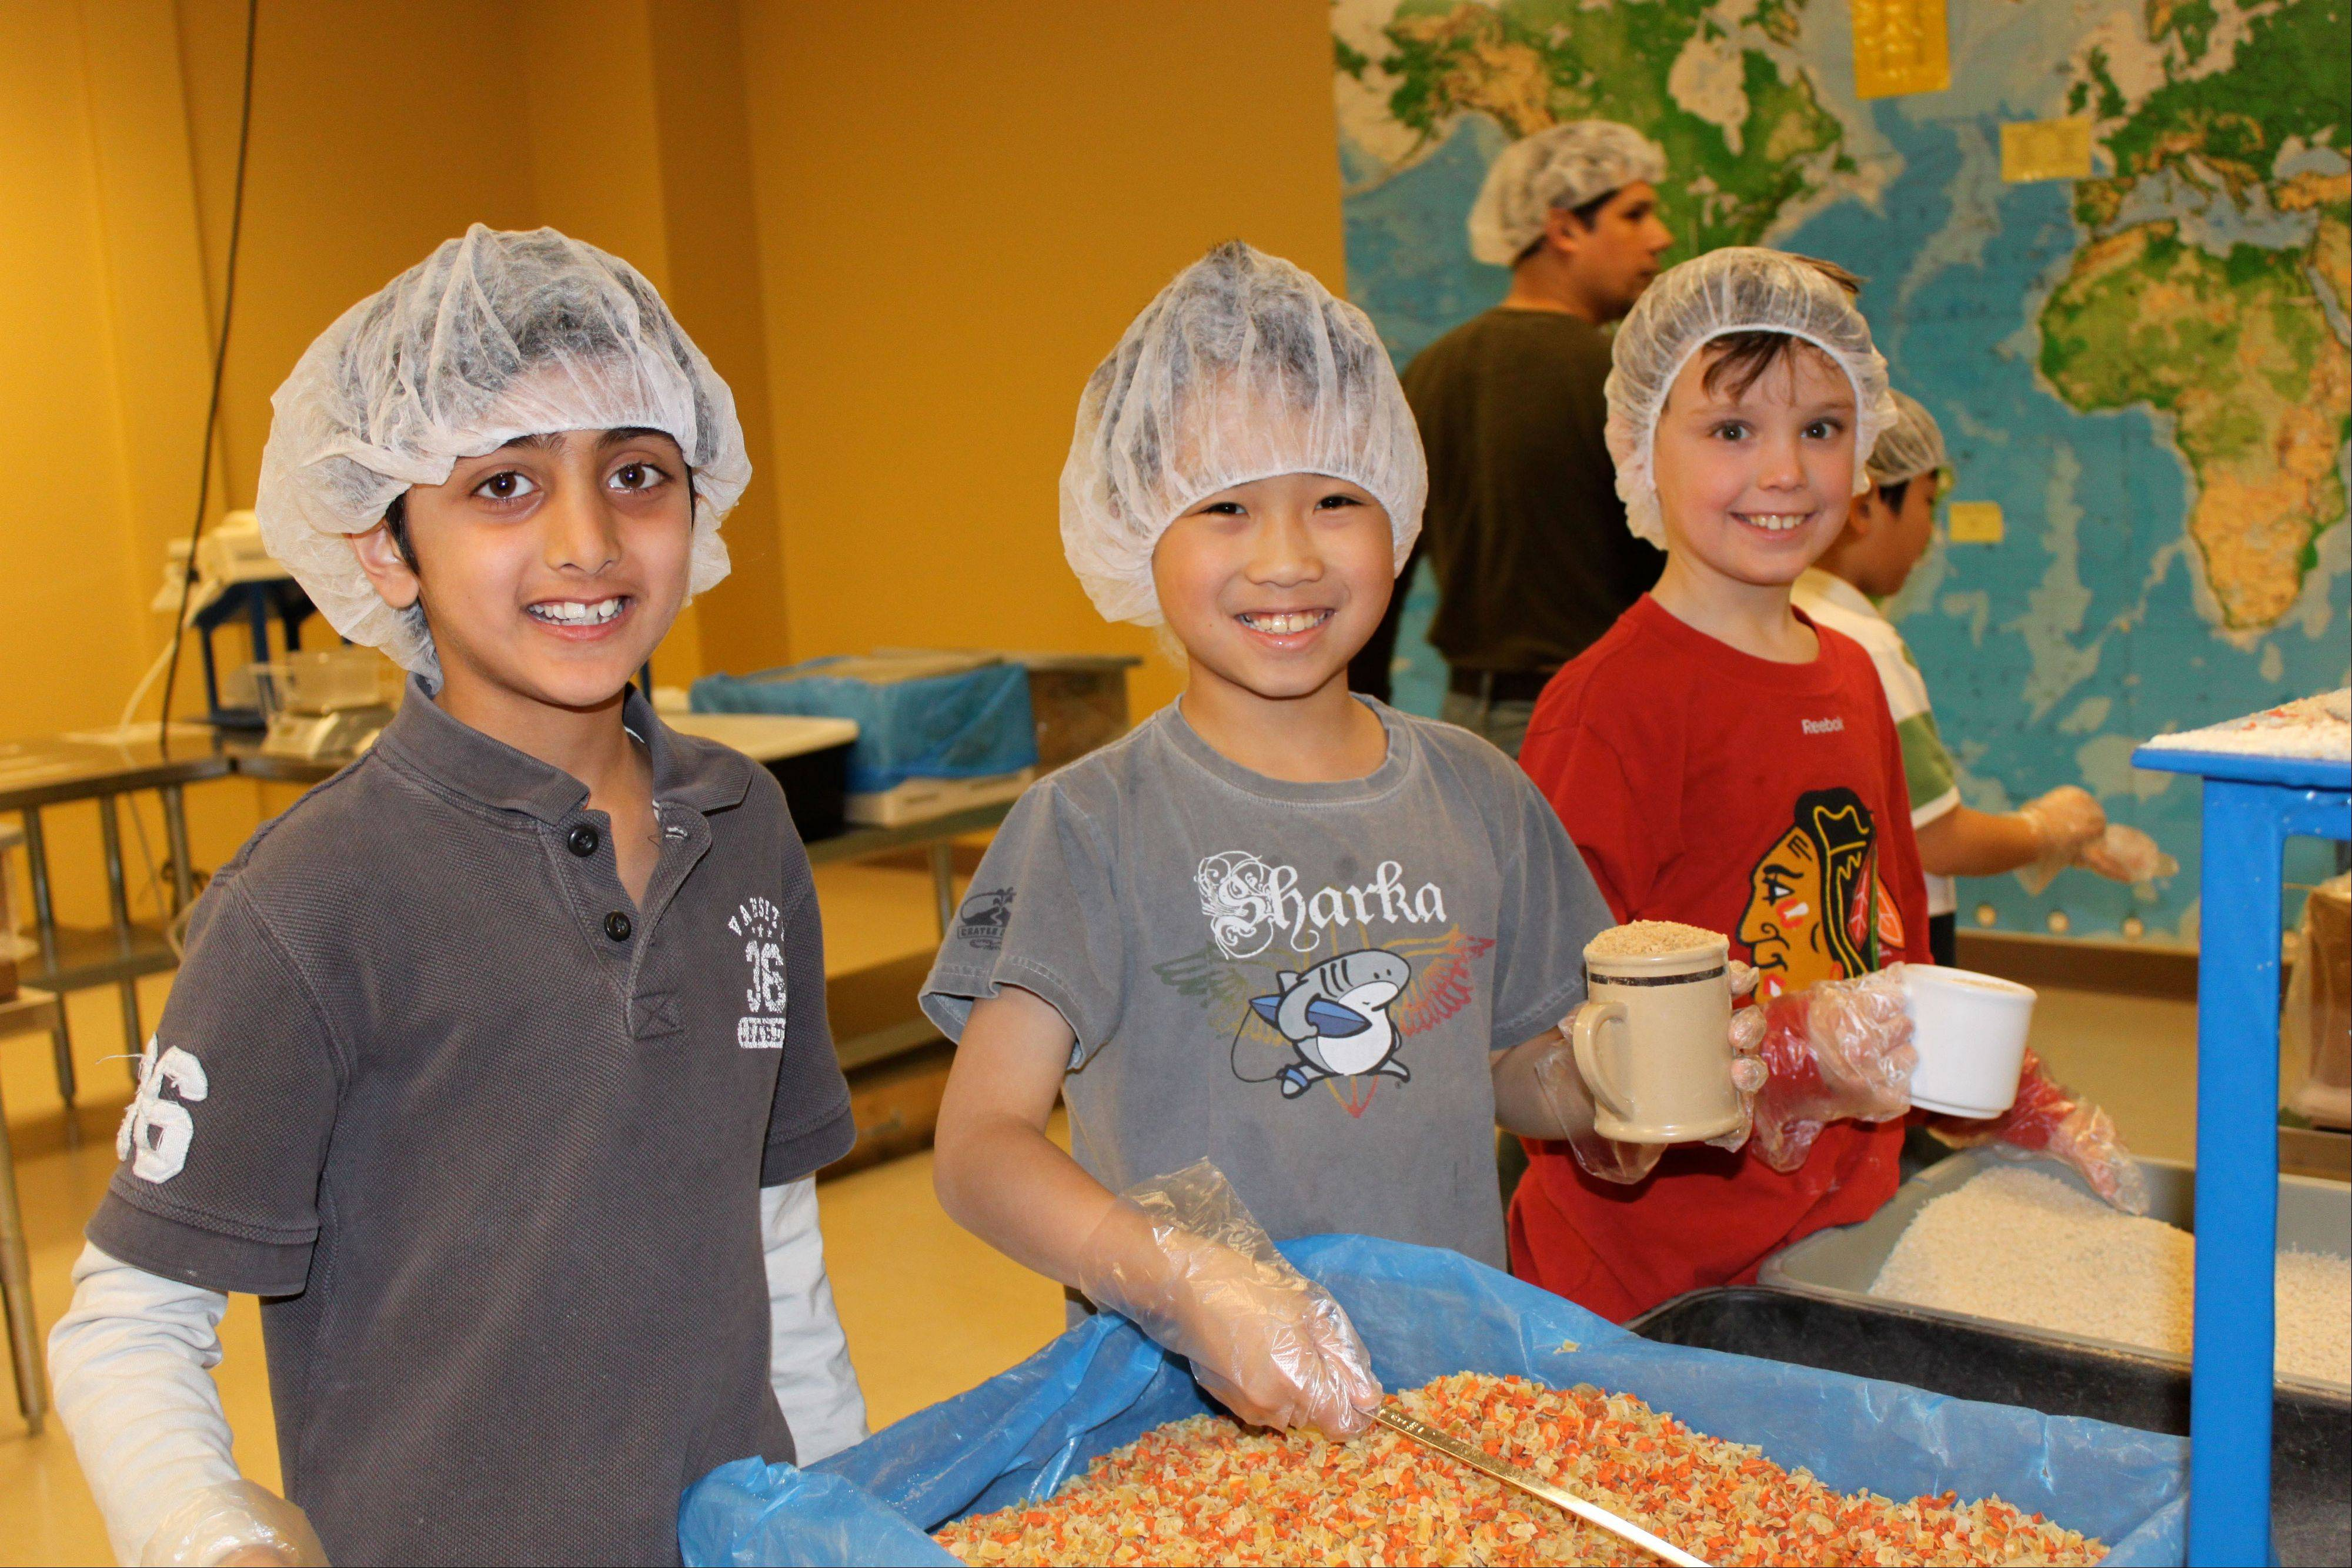 Kids as young as 5 are welcome to join the fun packing sessions at Feed My Starving Children.